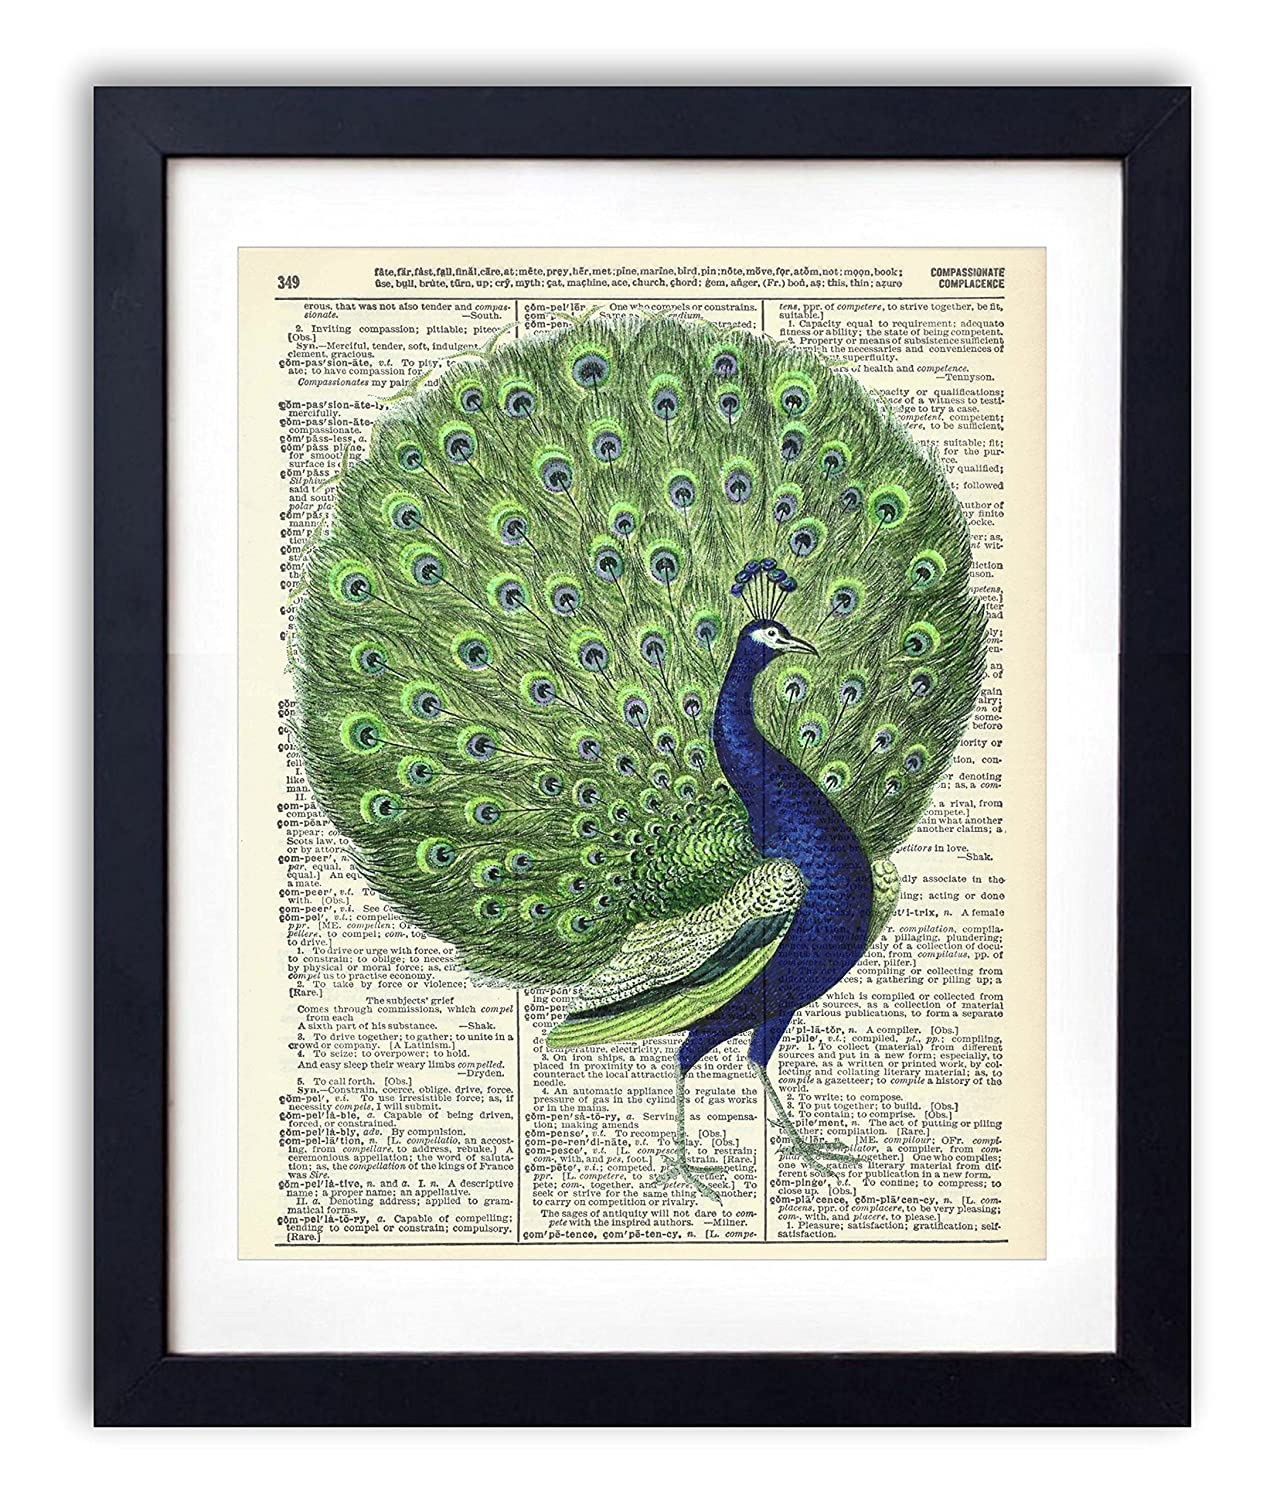 Peacock Color Illustration Upcycled Wall Art Vintage Dictionary Art Print 8x10 inches / 20.32 x 25.4 cm Unframed